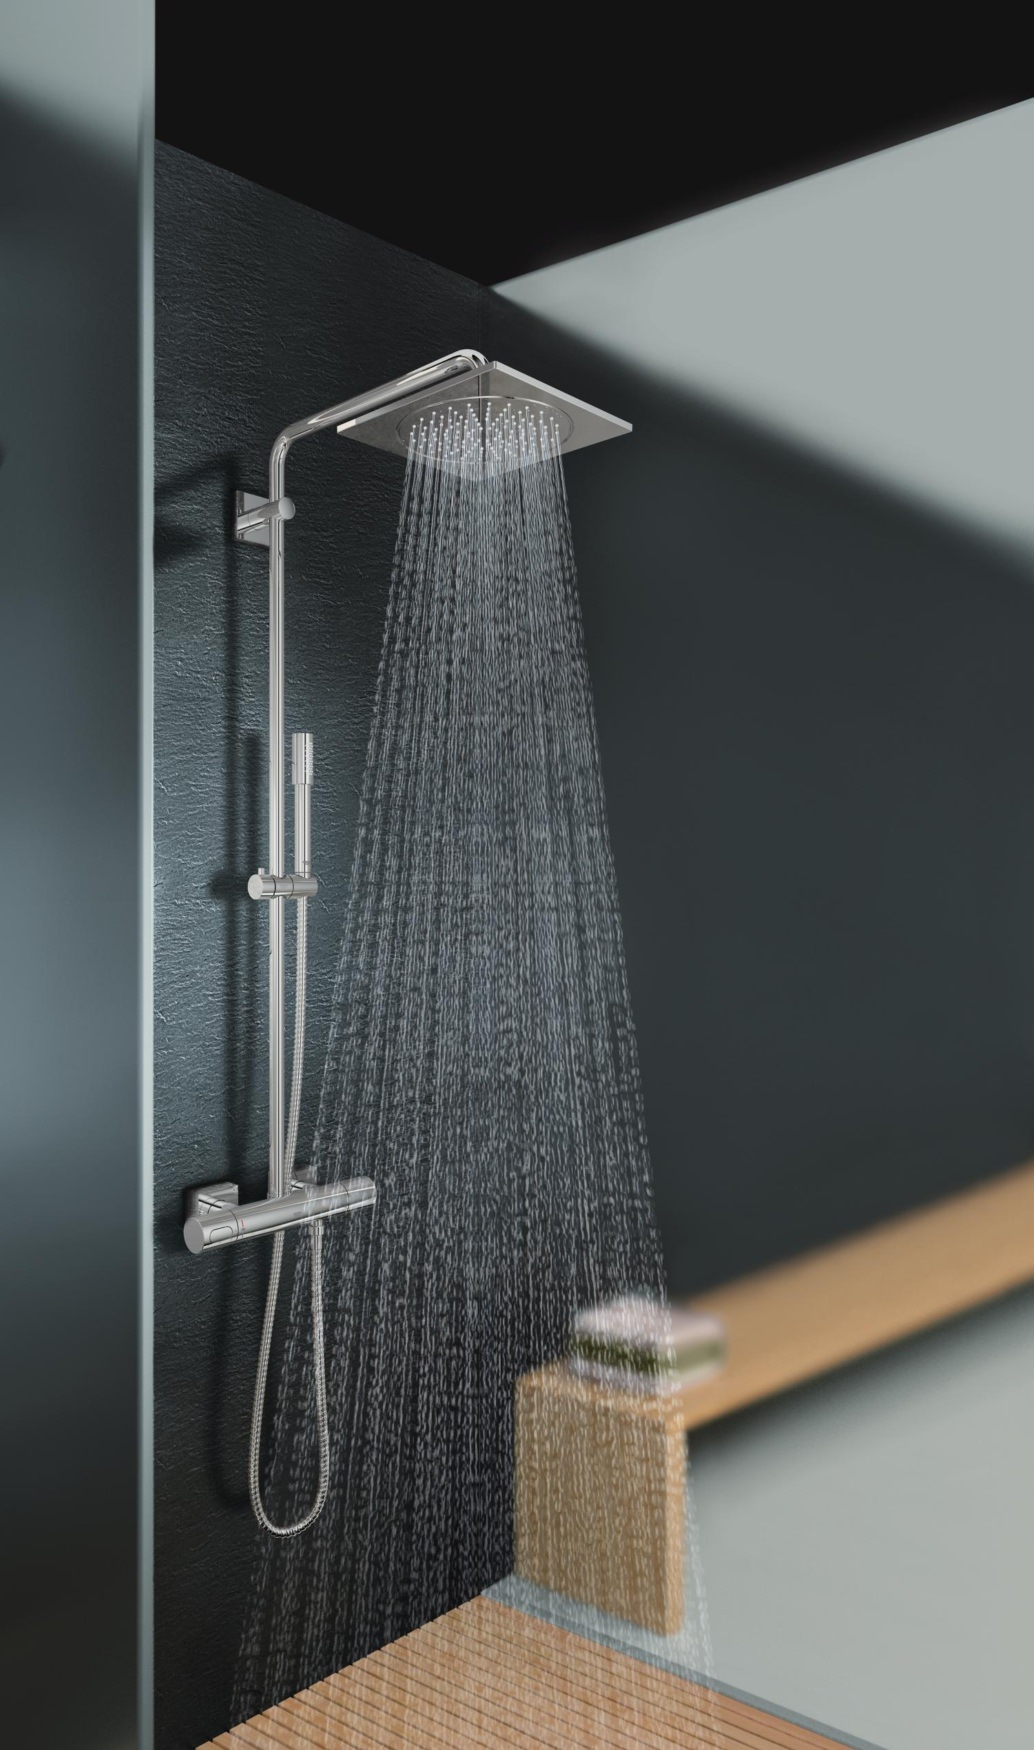 grohe spa rainshower f series thermostatic shower system. Black Bedroom Furniture Sets. Home Design Ideas